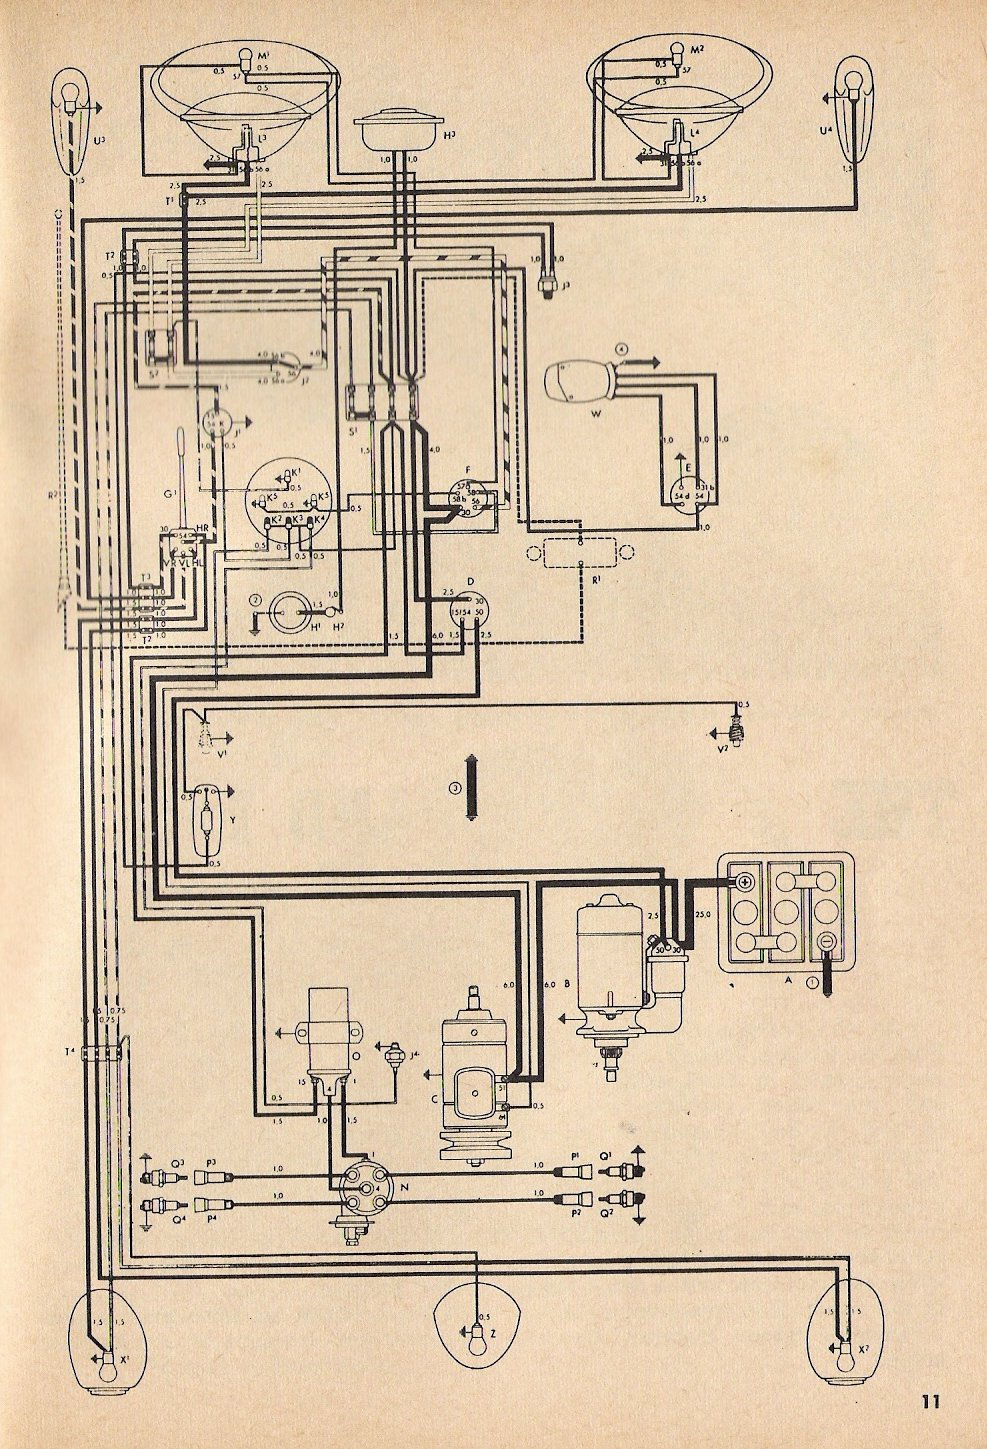 bug_toaug57 thesamba com type 1 wiring diagrams 1965 vw beetle wiring diagram at mifinder.co